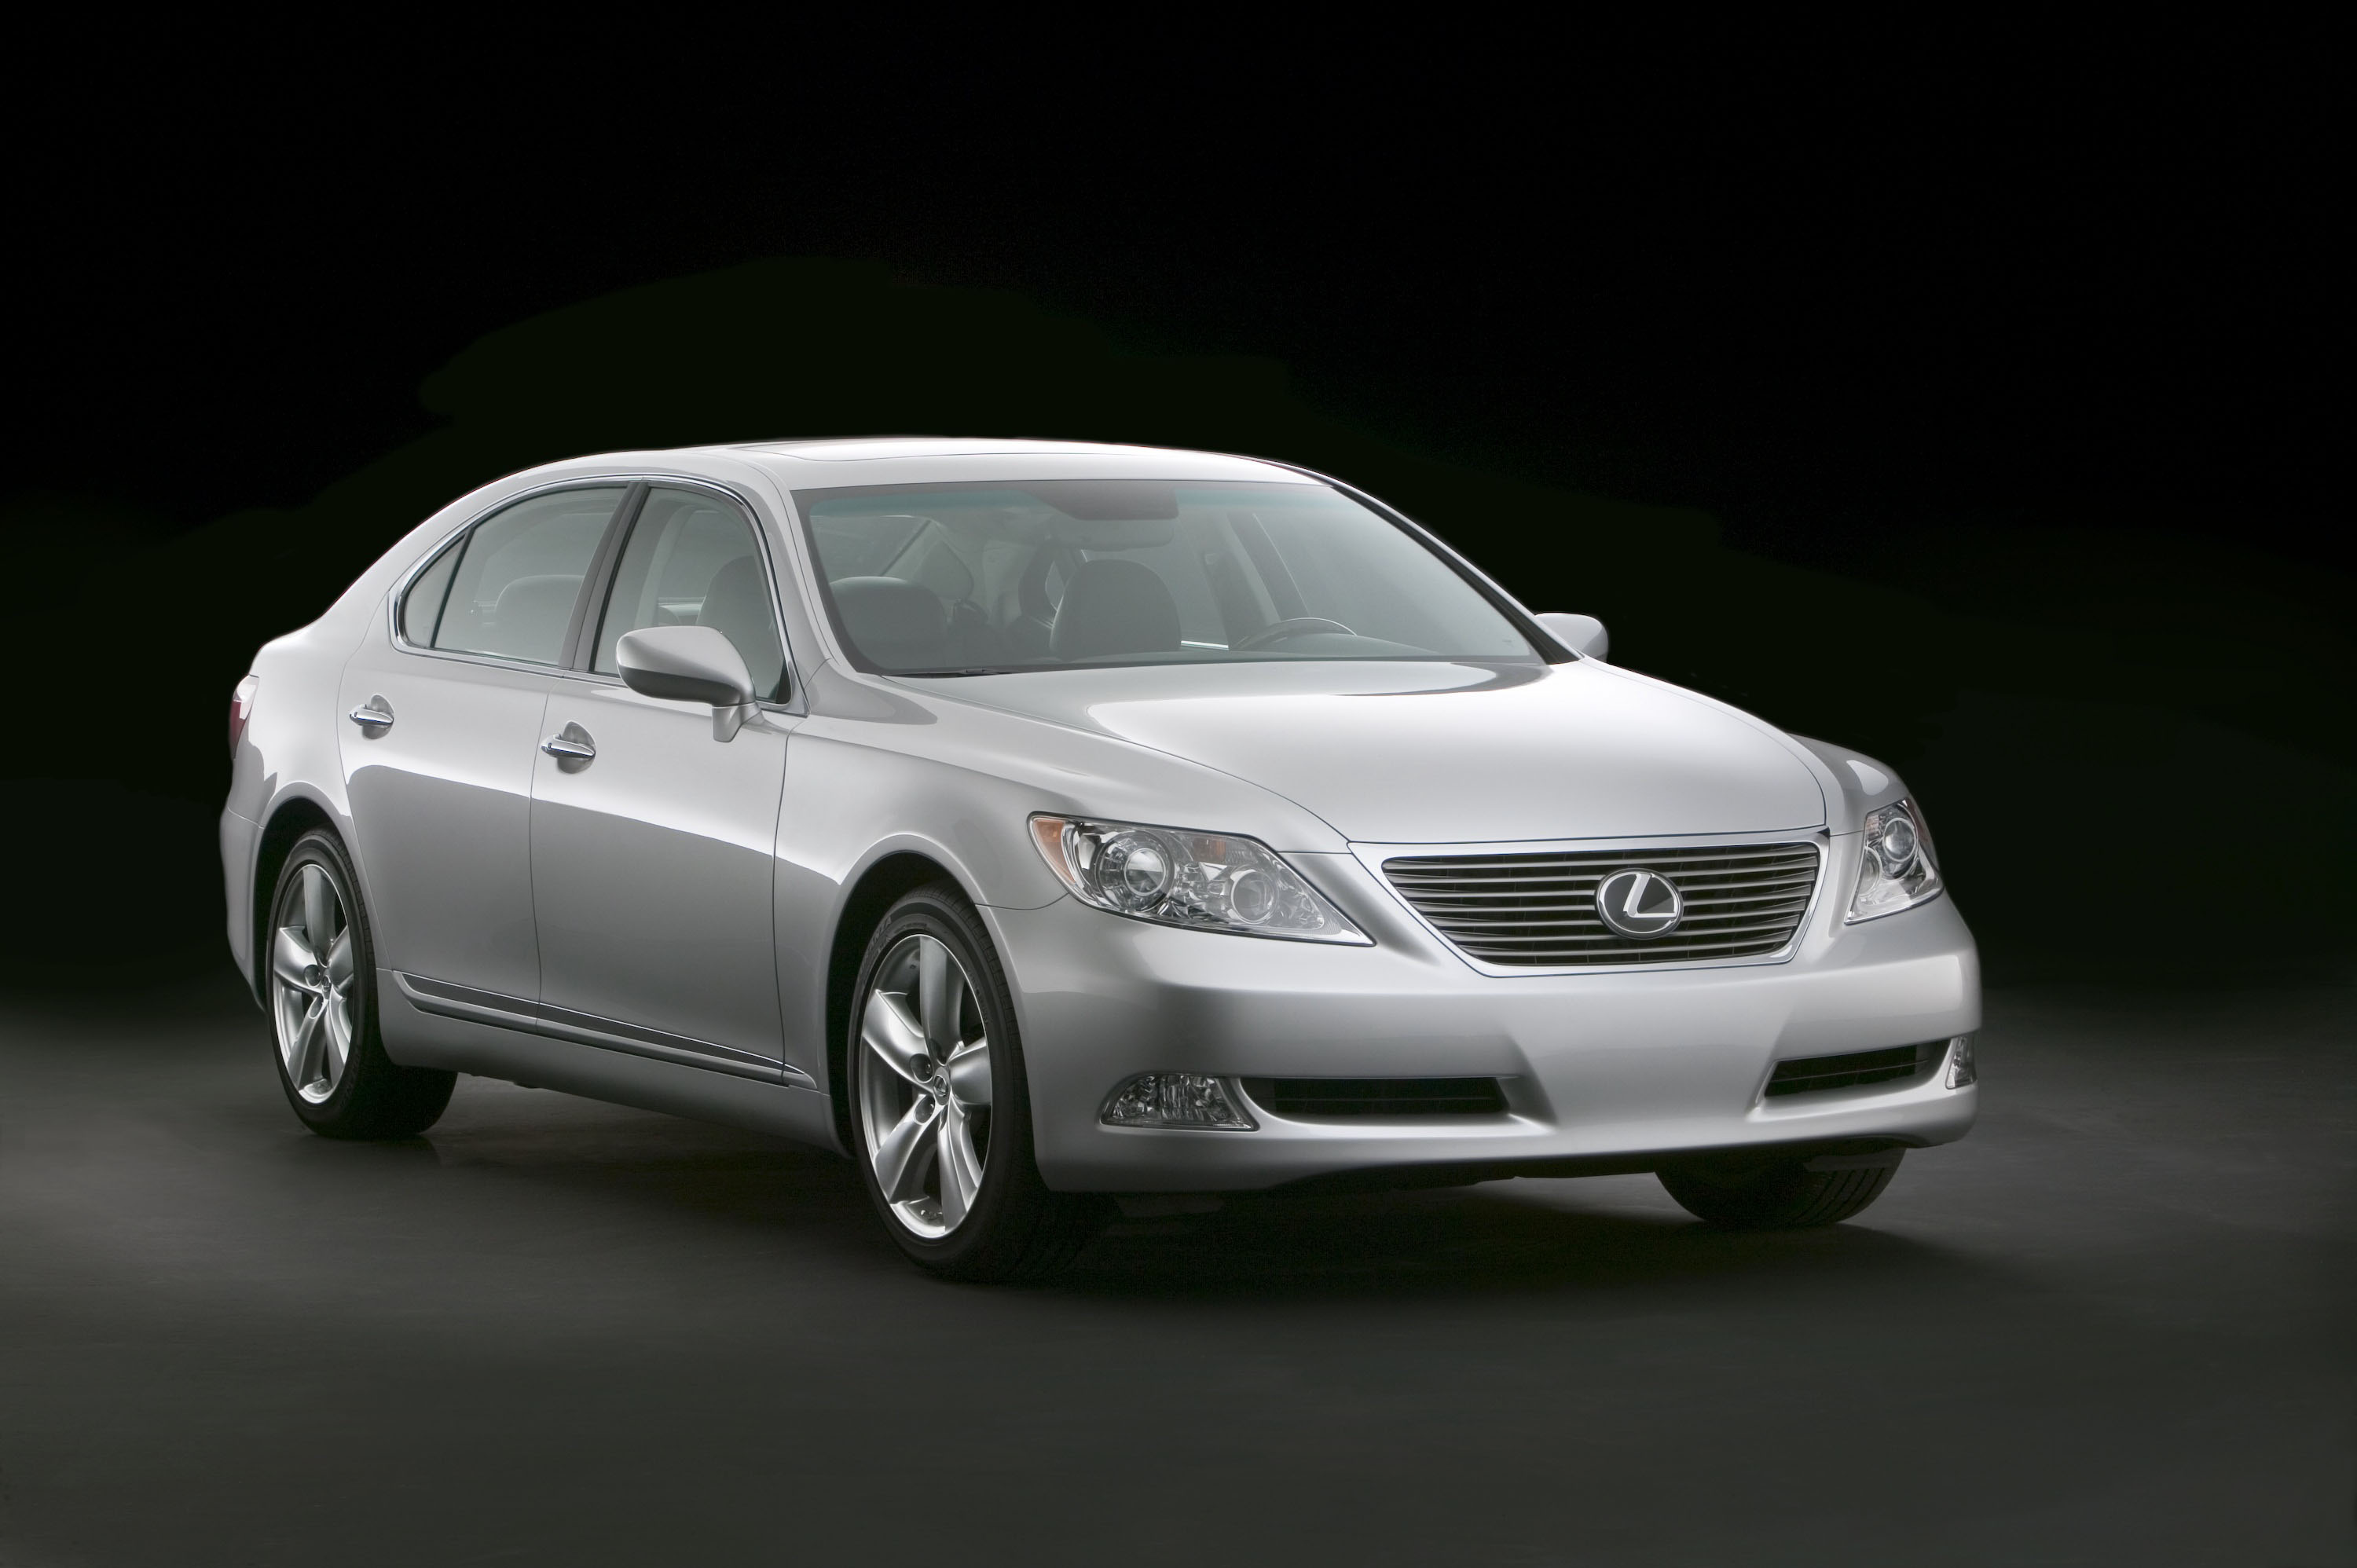 sale profile in nh danvers bedford of fresh ls car manchester sport pany lovely lexus for ira